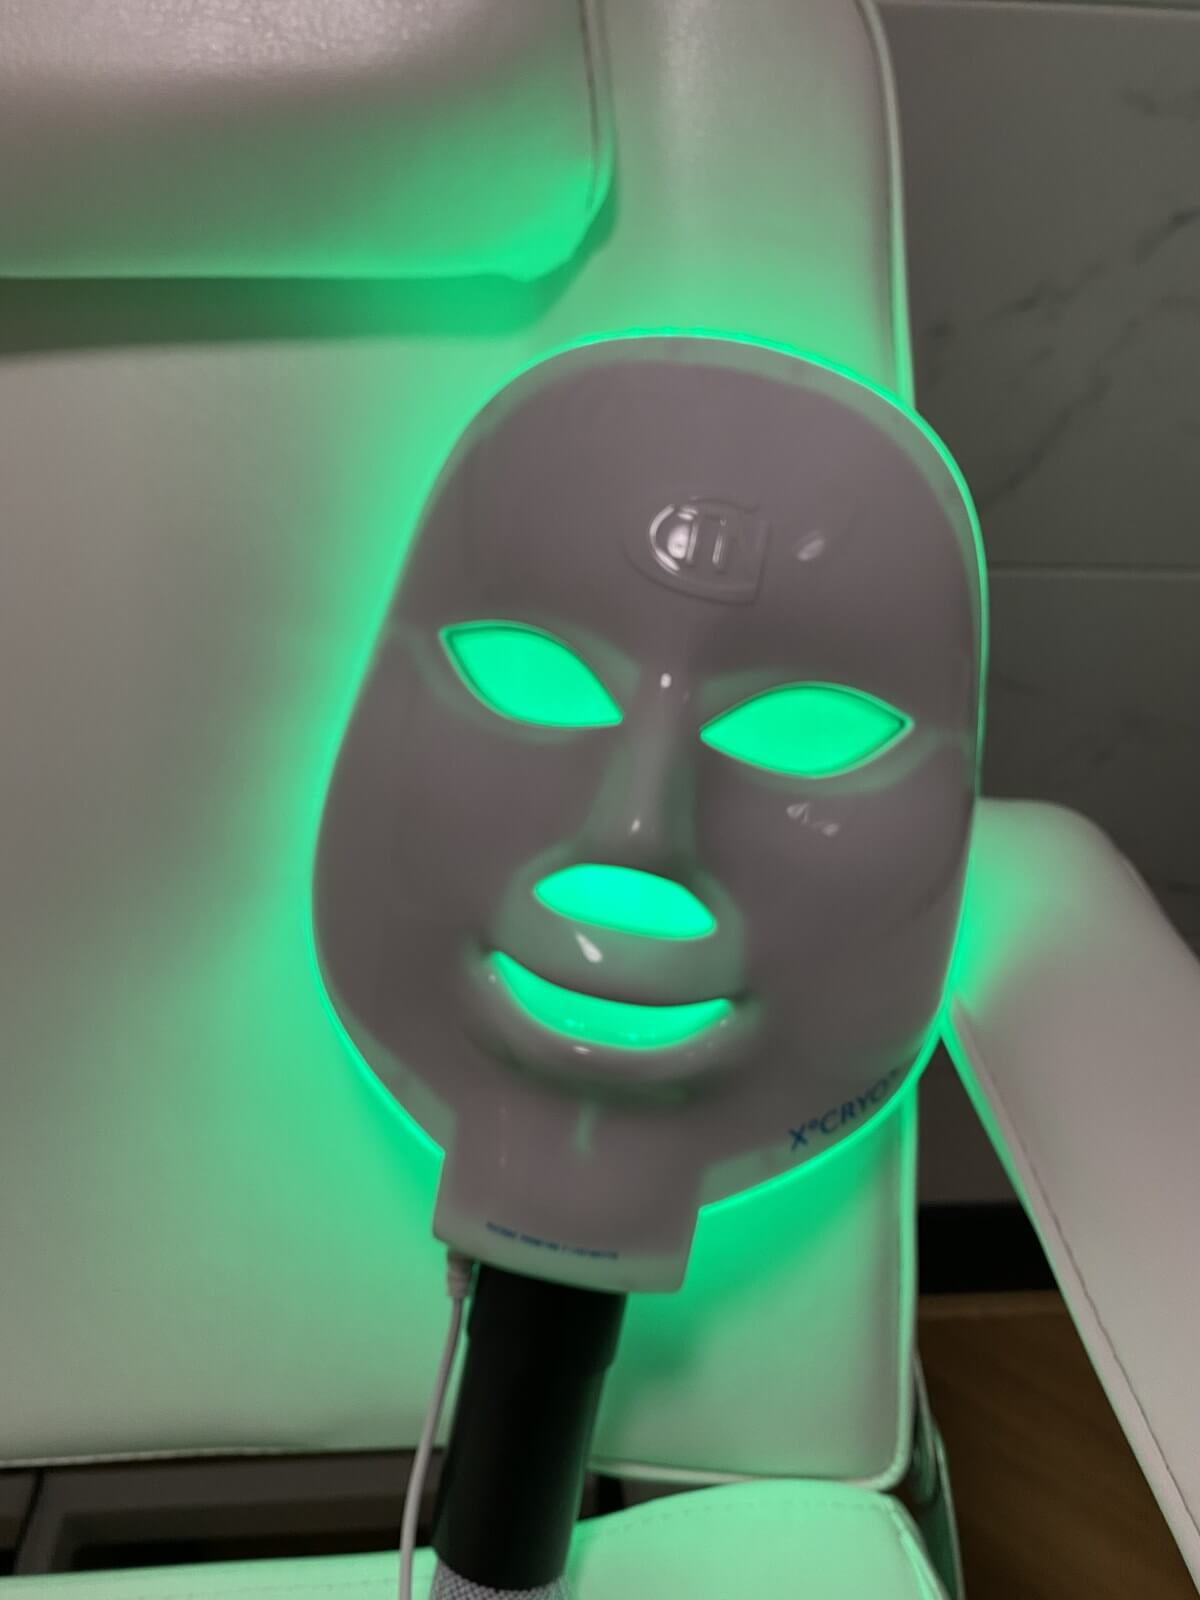 Green LED Light - IV Vitamin & Therapy Lounge